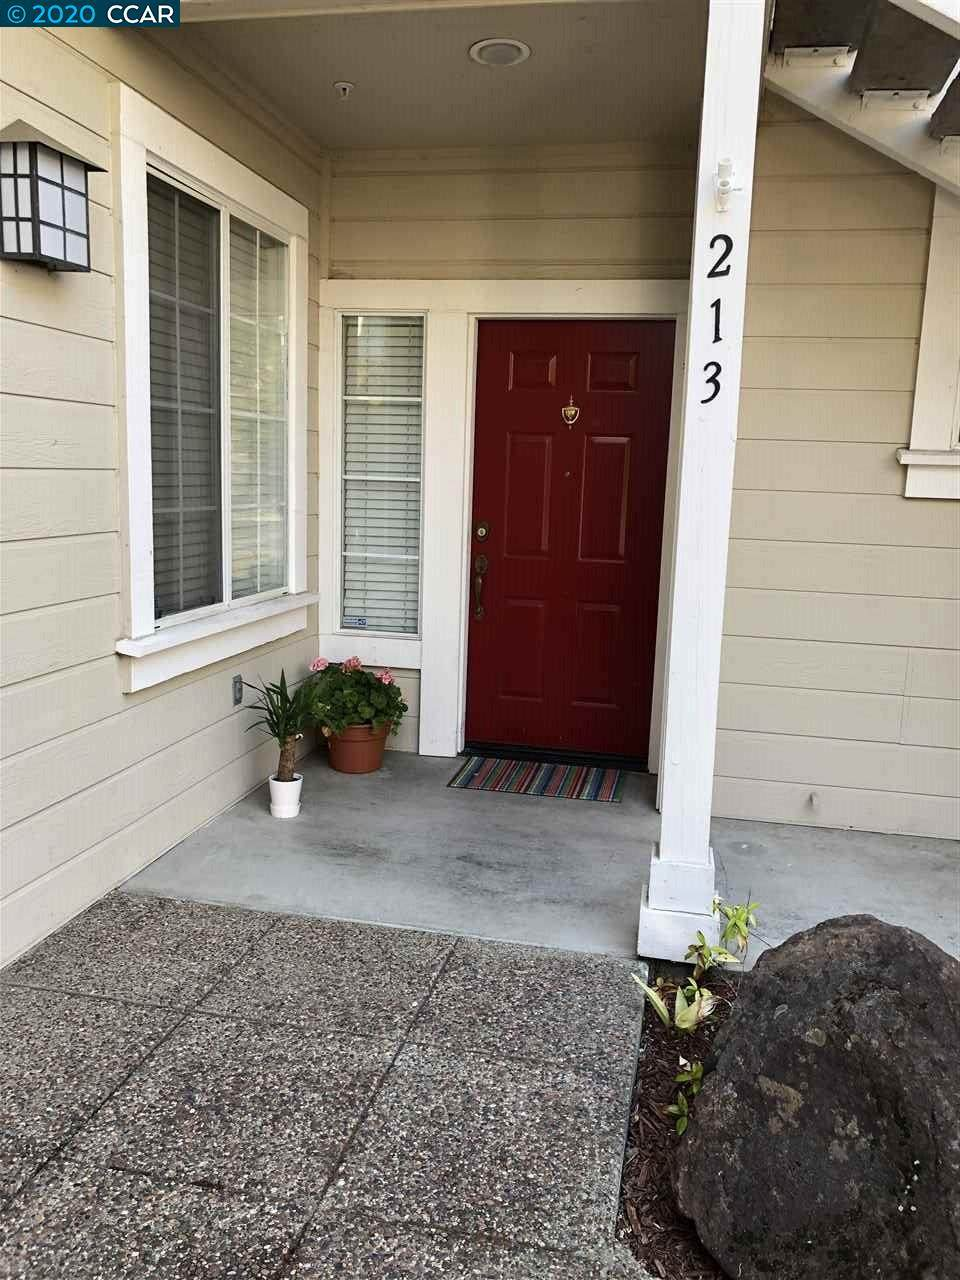 213 Skyline Dr - Photo 1